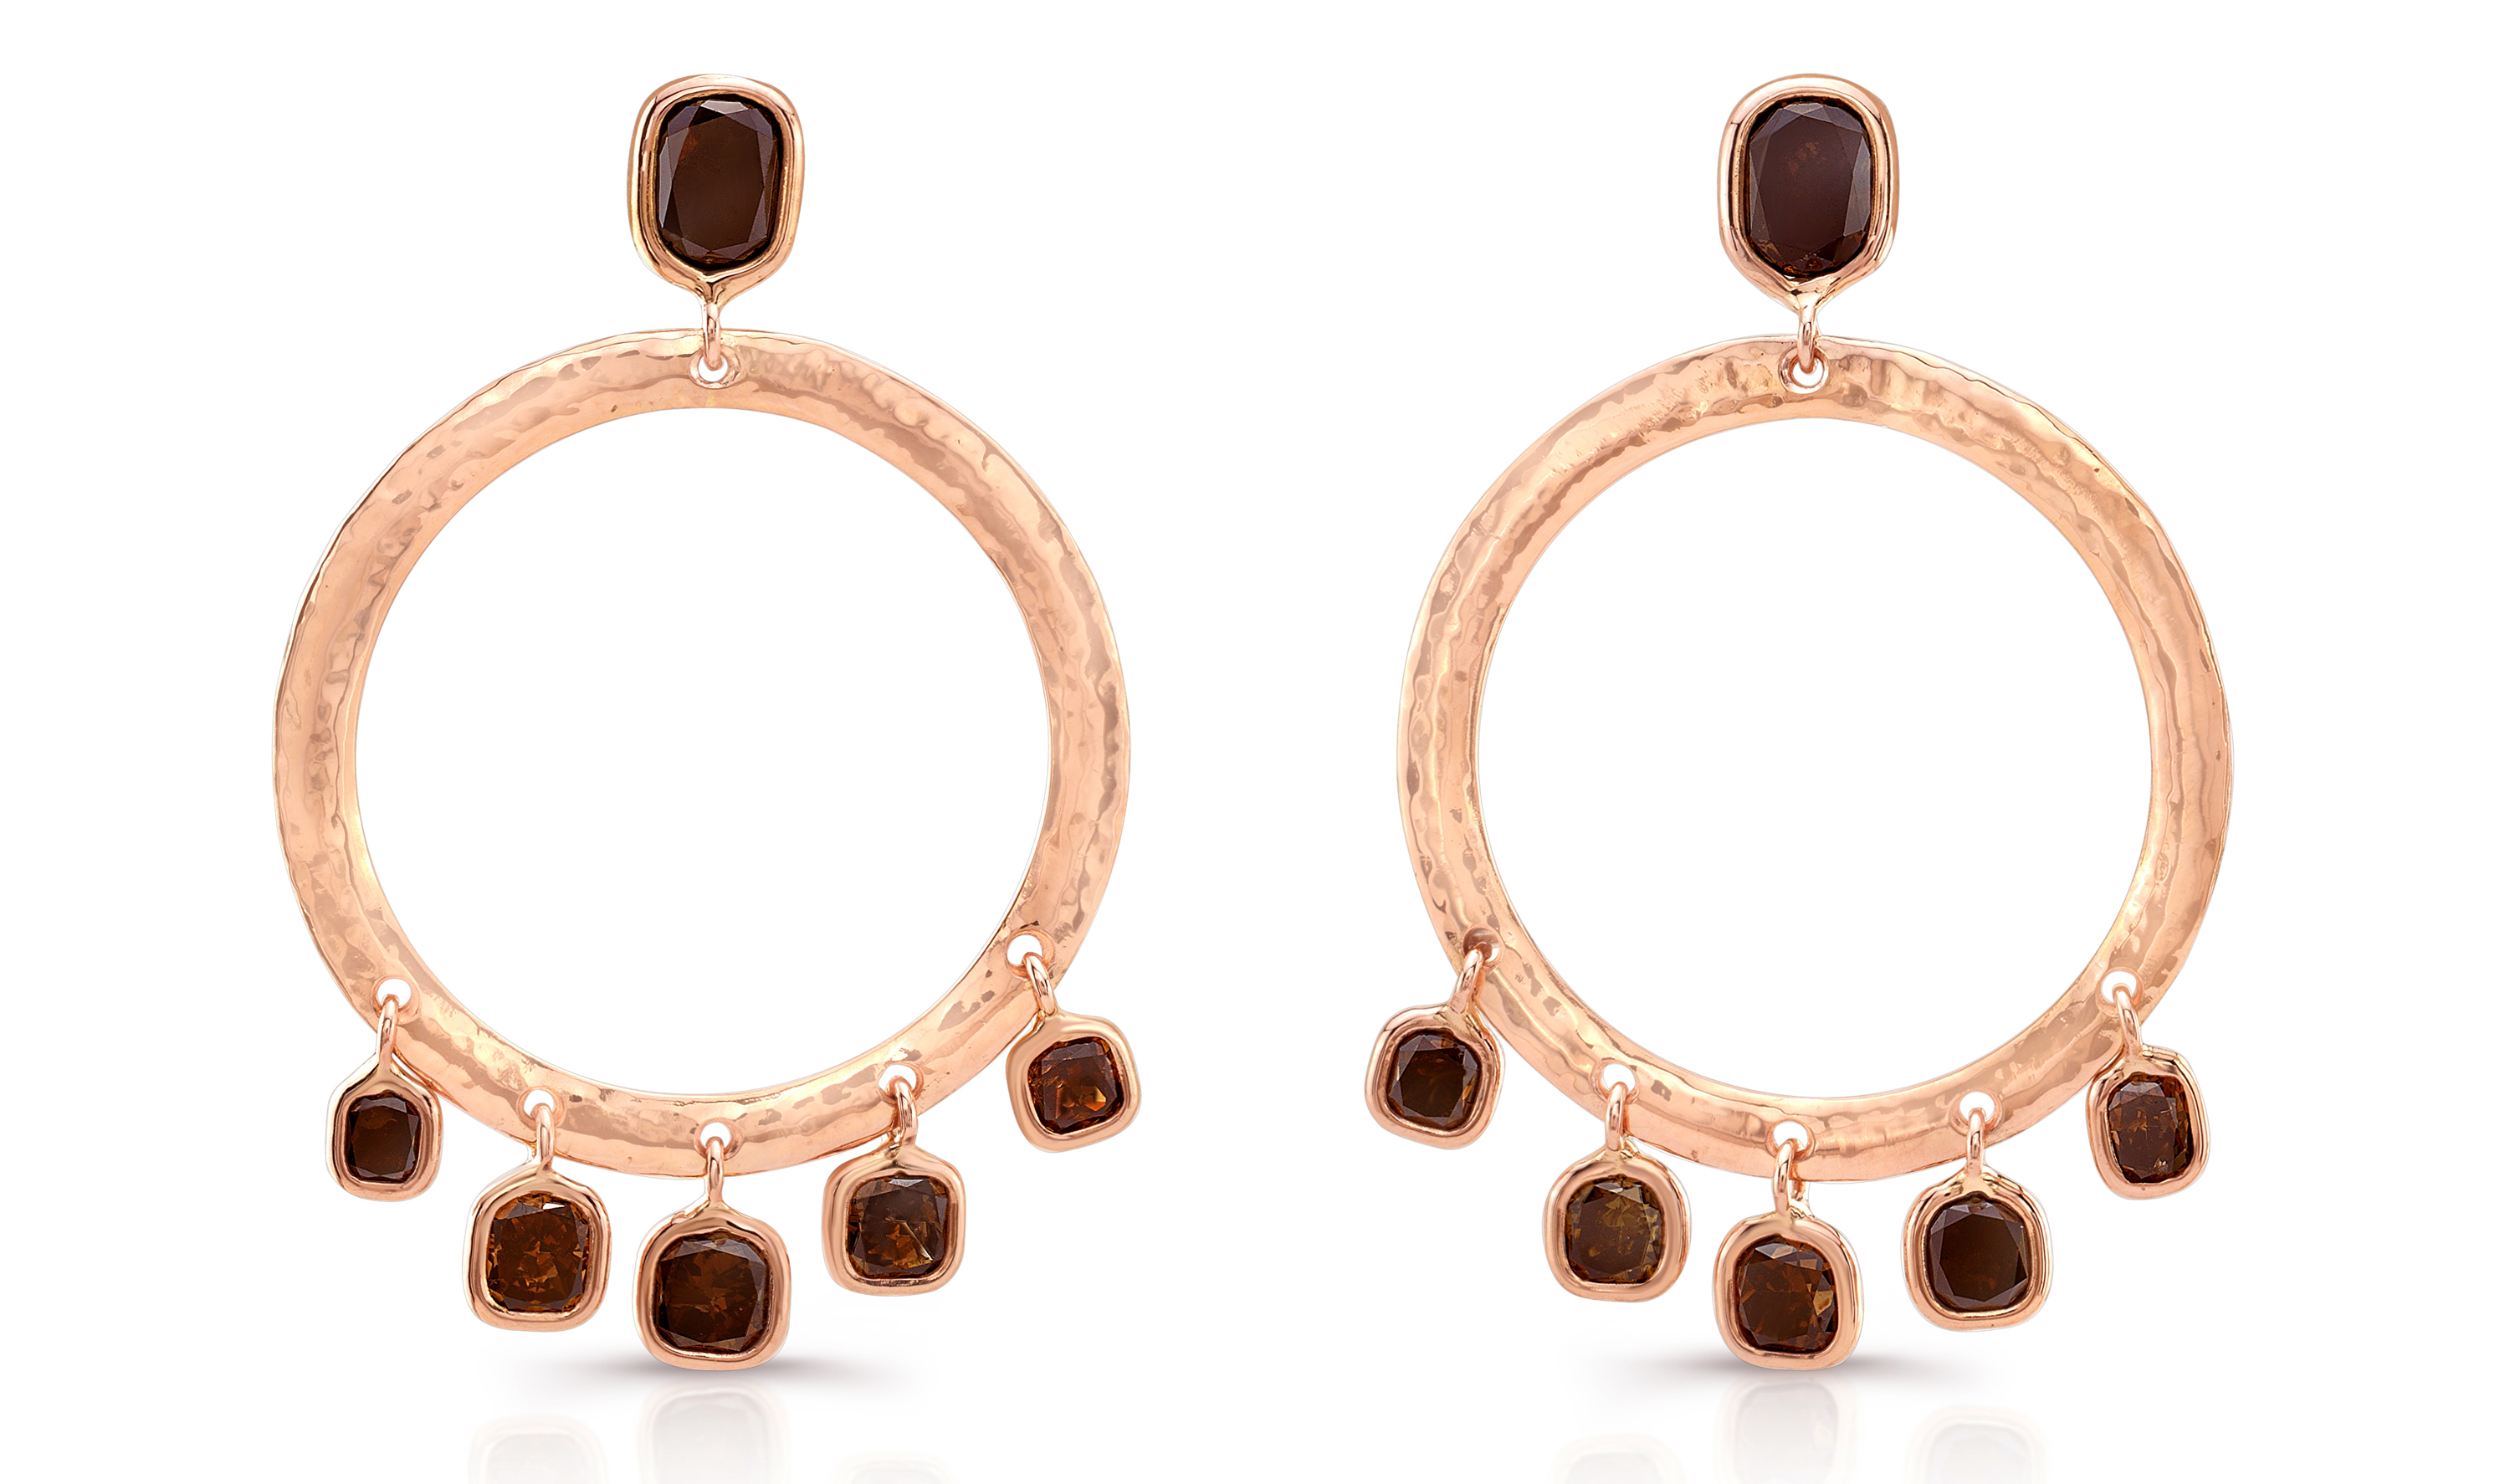 Dorian and Rose cognac diamond earrings | JCK On Your Market